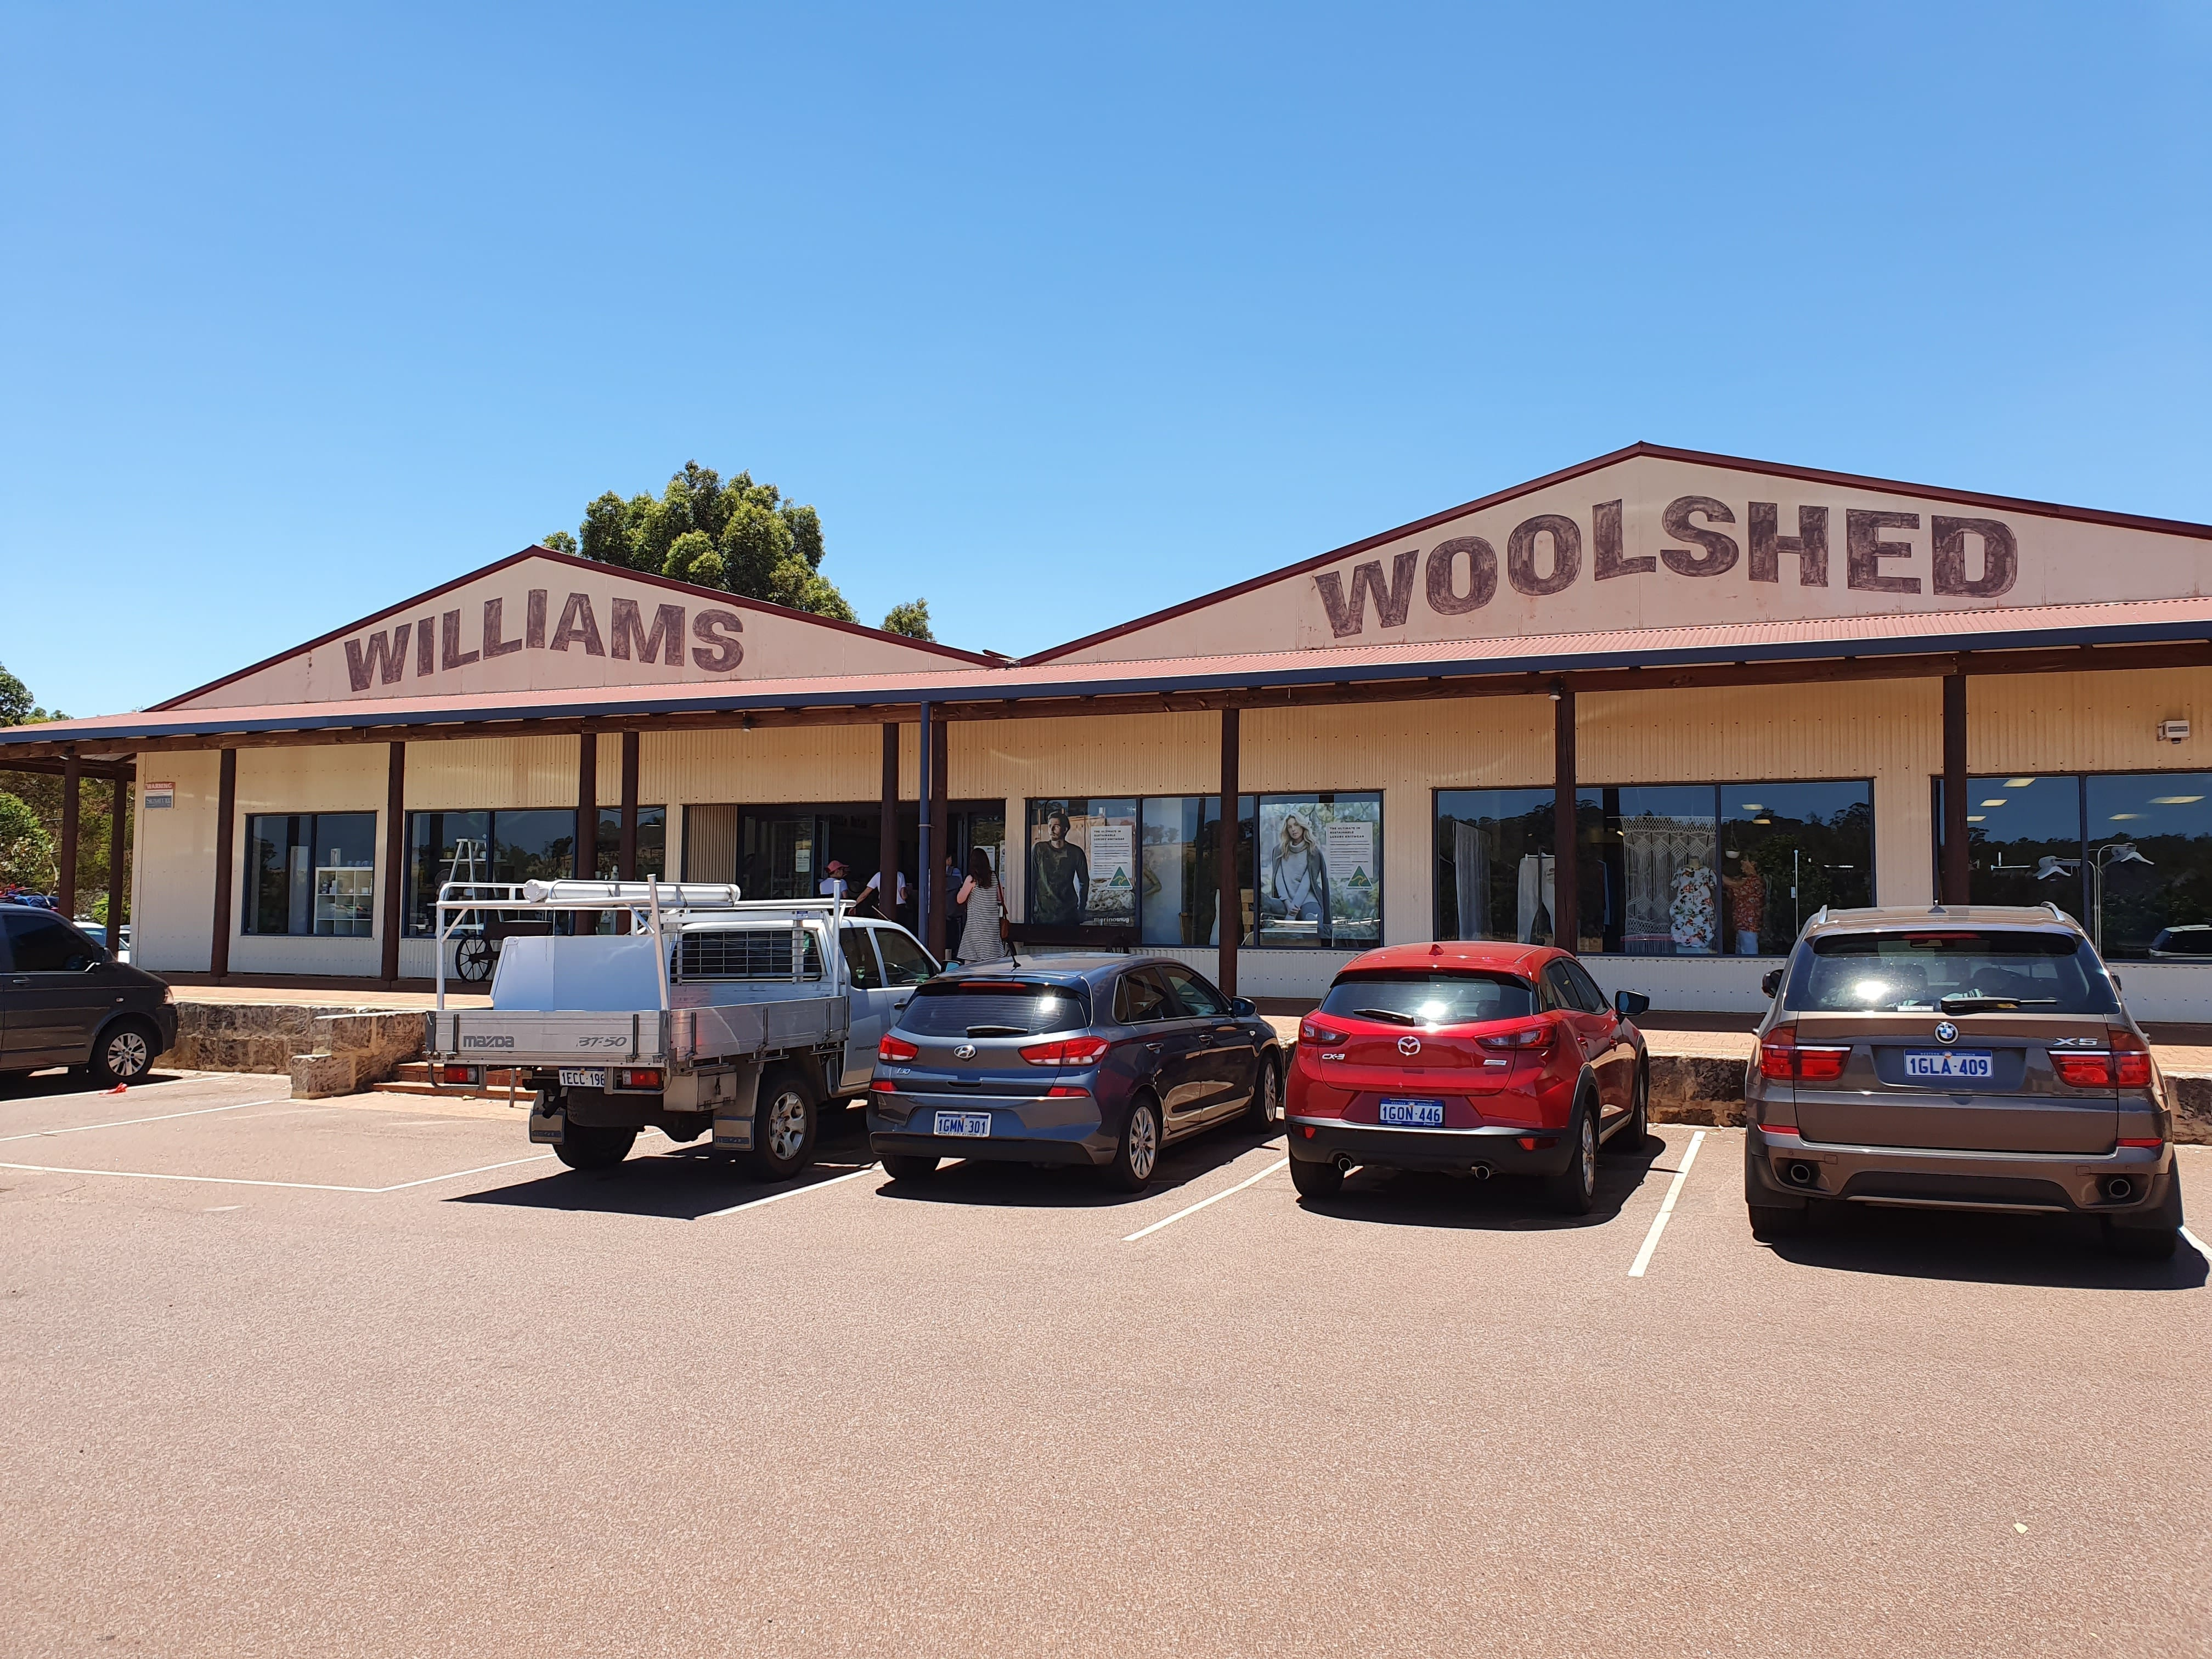 Williams Woolshed